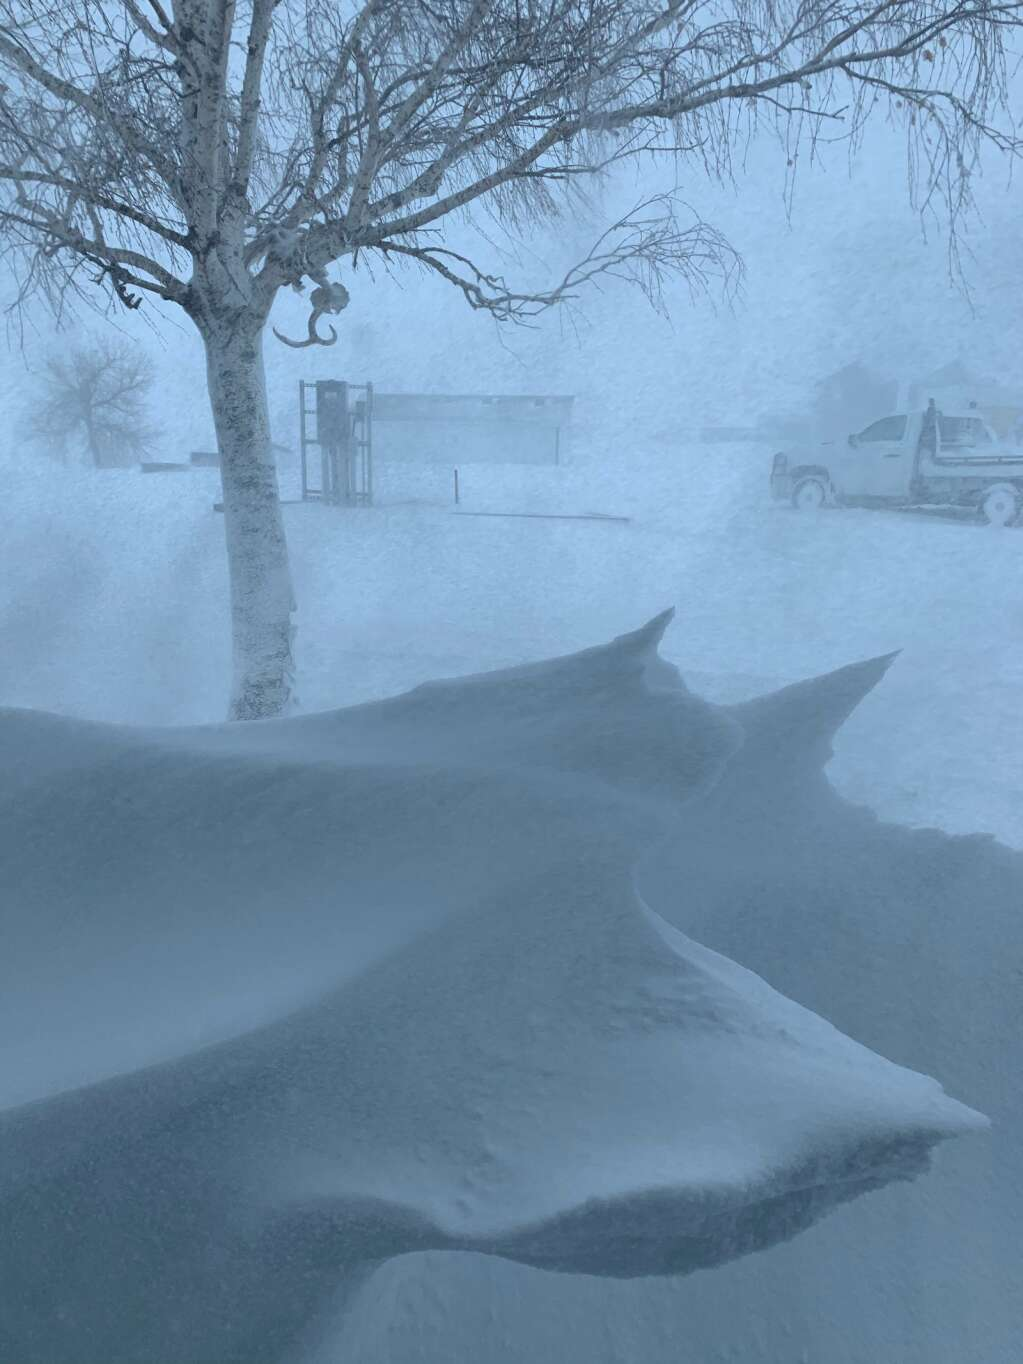 Ranchers have been struggling with huge drifts and pushing snow for days. | Sondra Anderson; Northeast of Pine Bluffs; Wyoming.